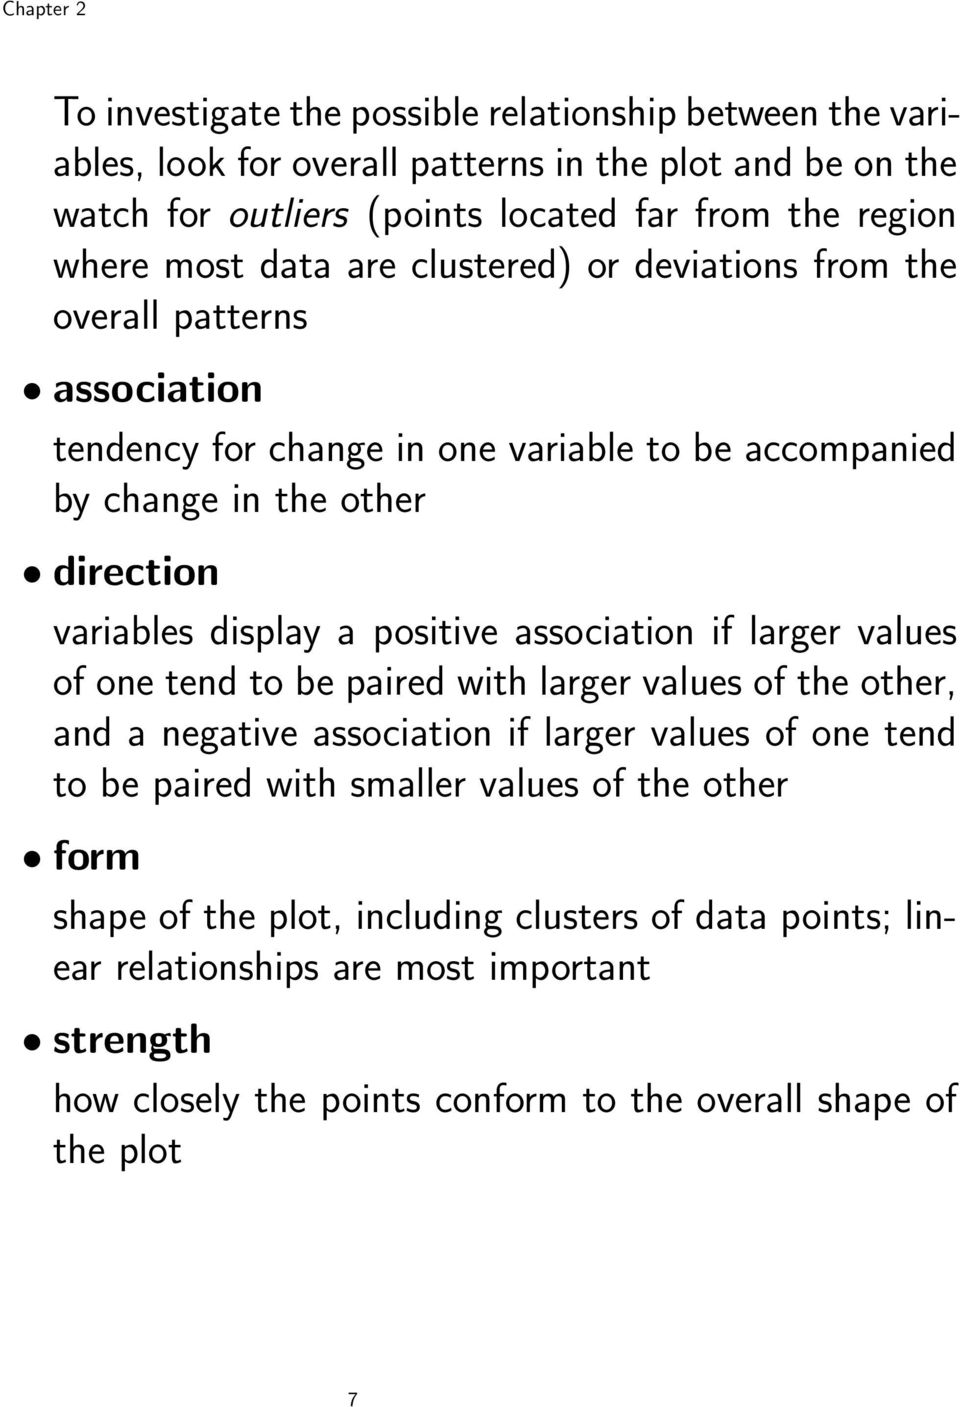 positive association if larger values of one tend to be paired with larger values of the other, and a negative association if larger values of one tend to be paired with smaller